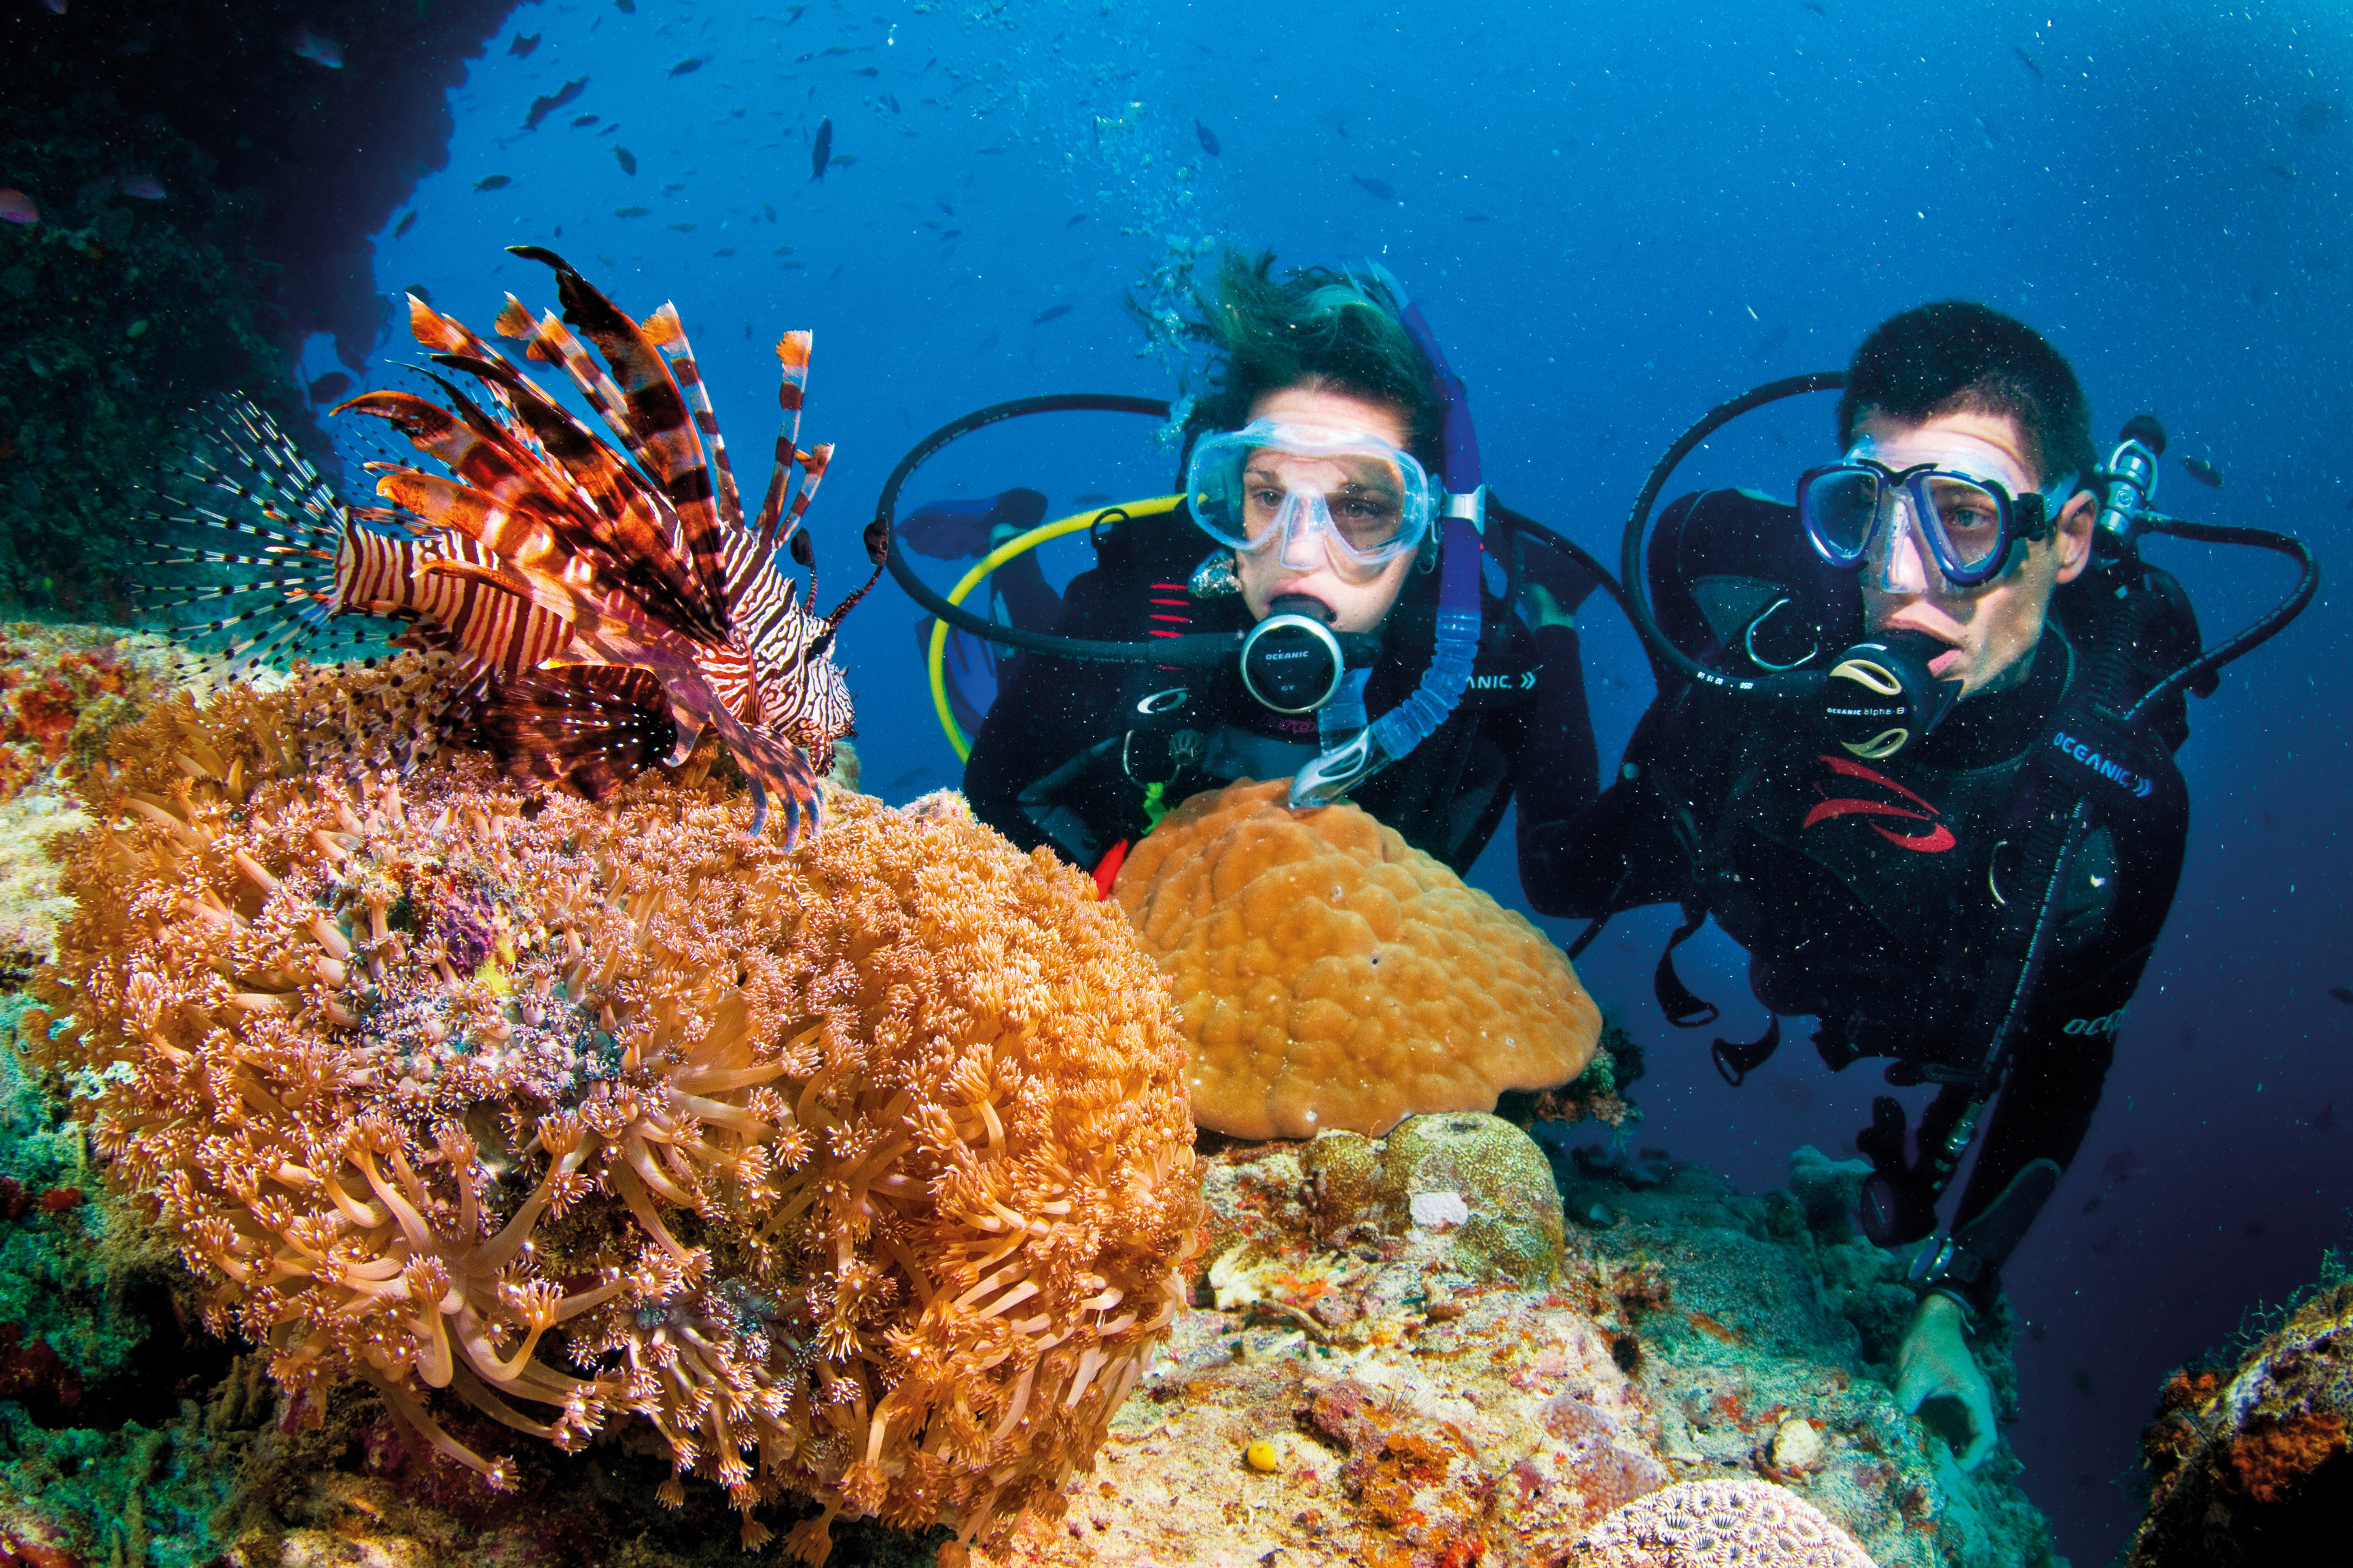 Coral reef Cu Lao Cham_source vietmate.com.vn